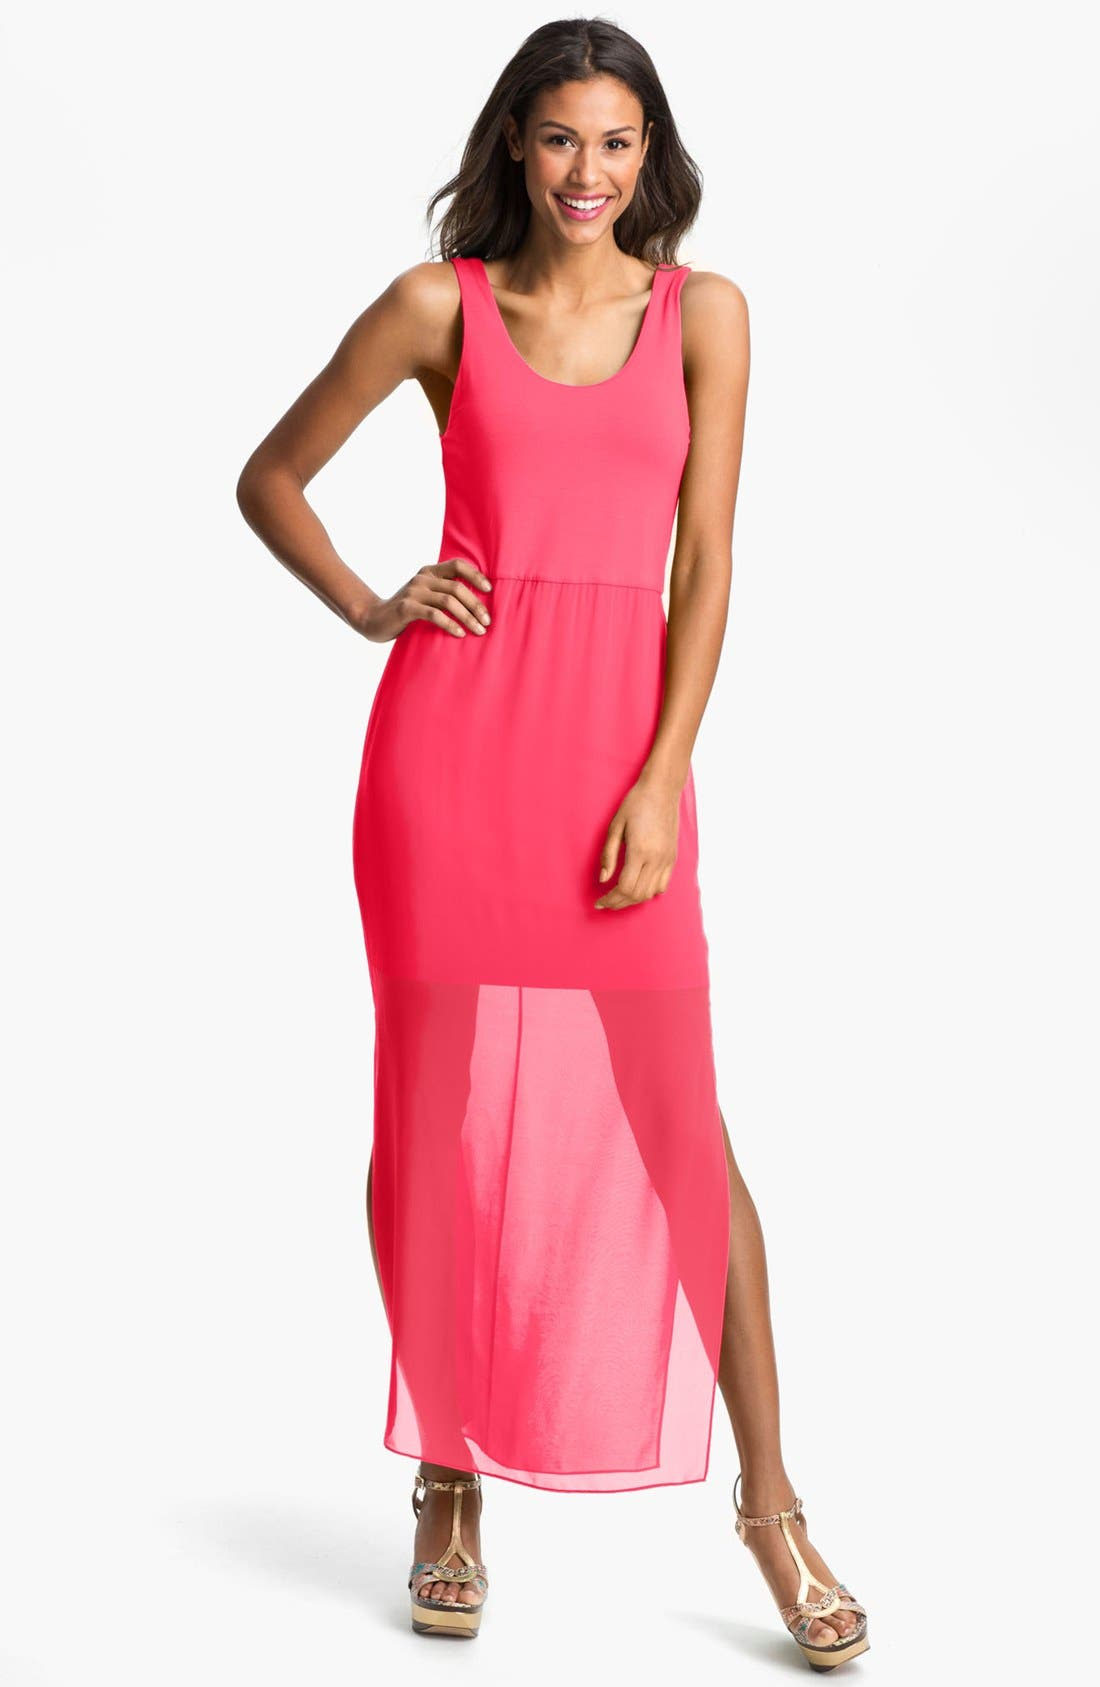 Alternate Image 1 Selected - Vince Camuto Chiffon Overlay Tank Dress (Petite)